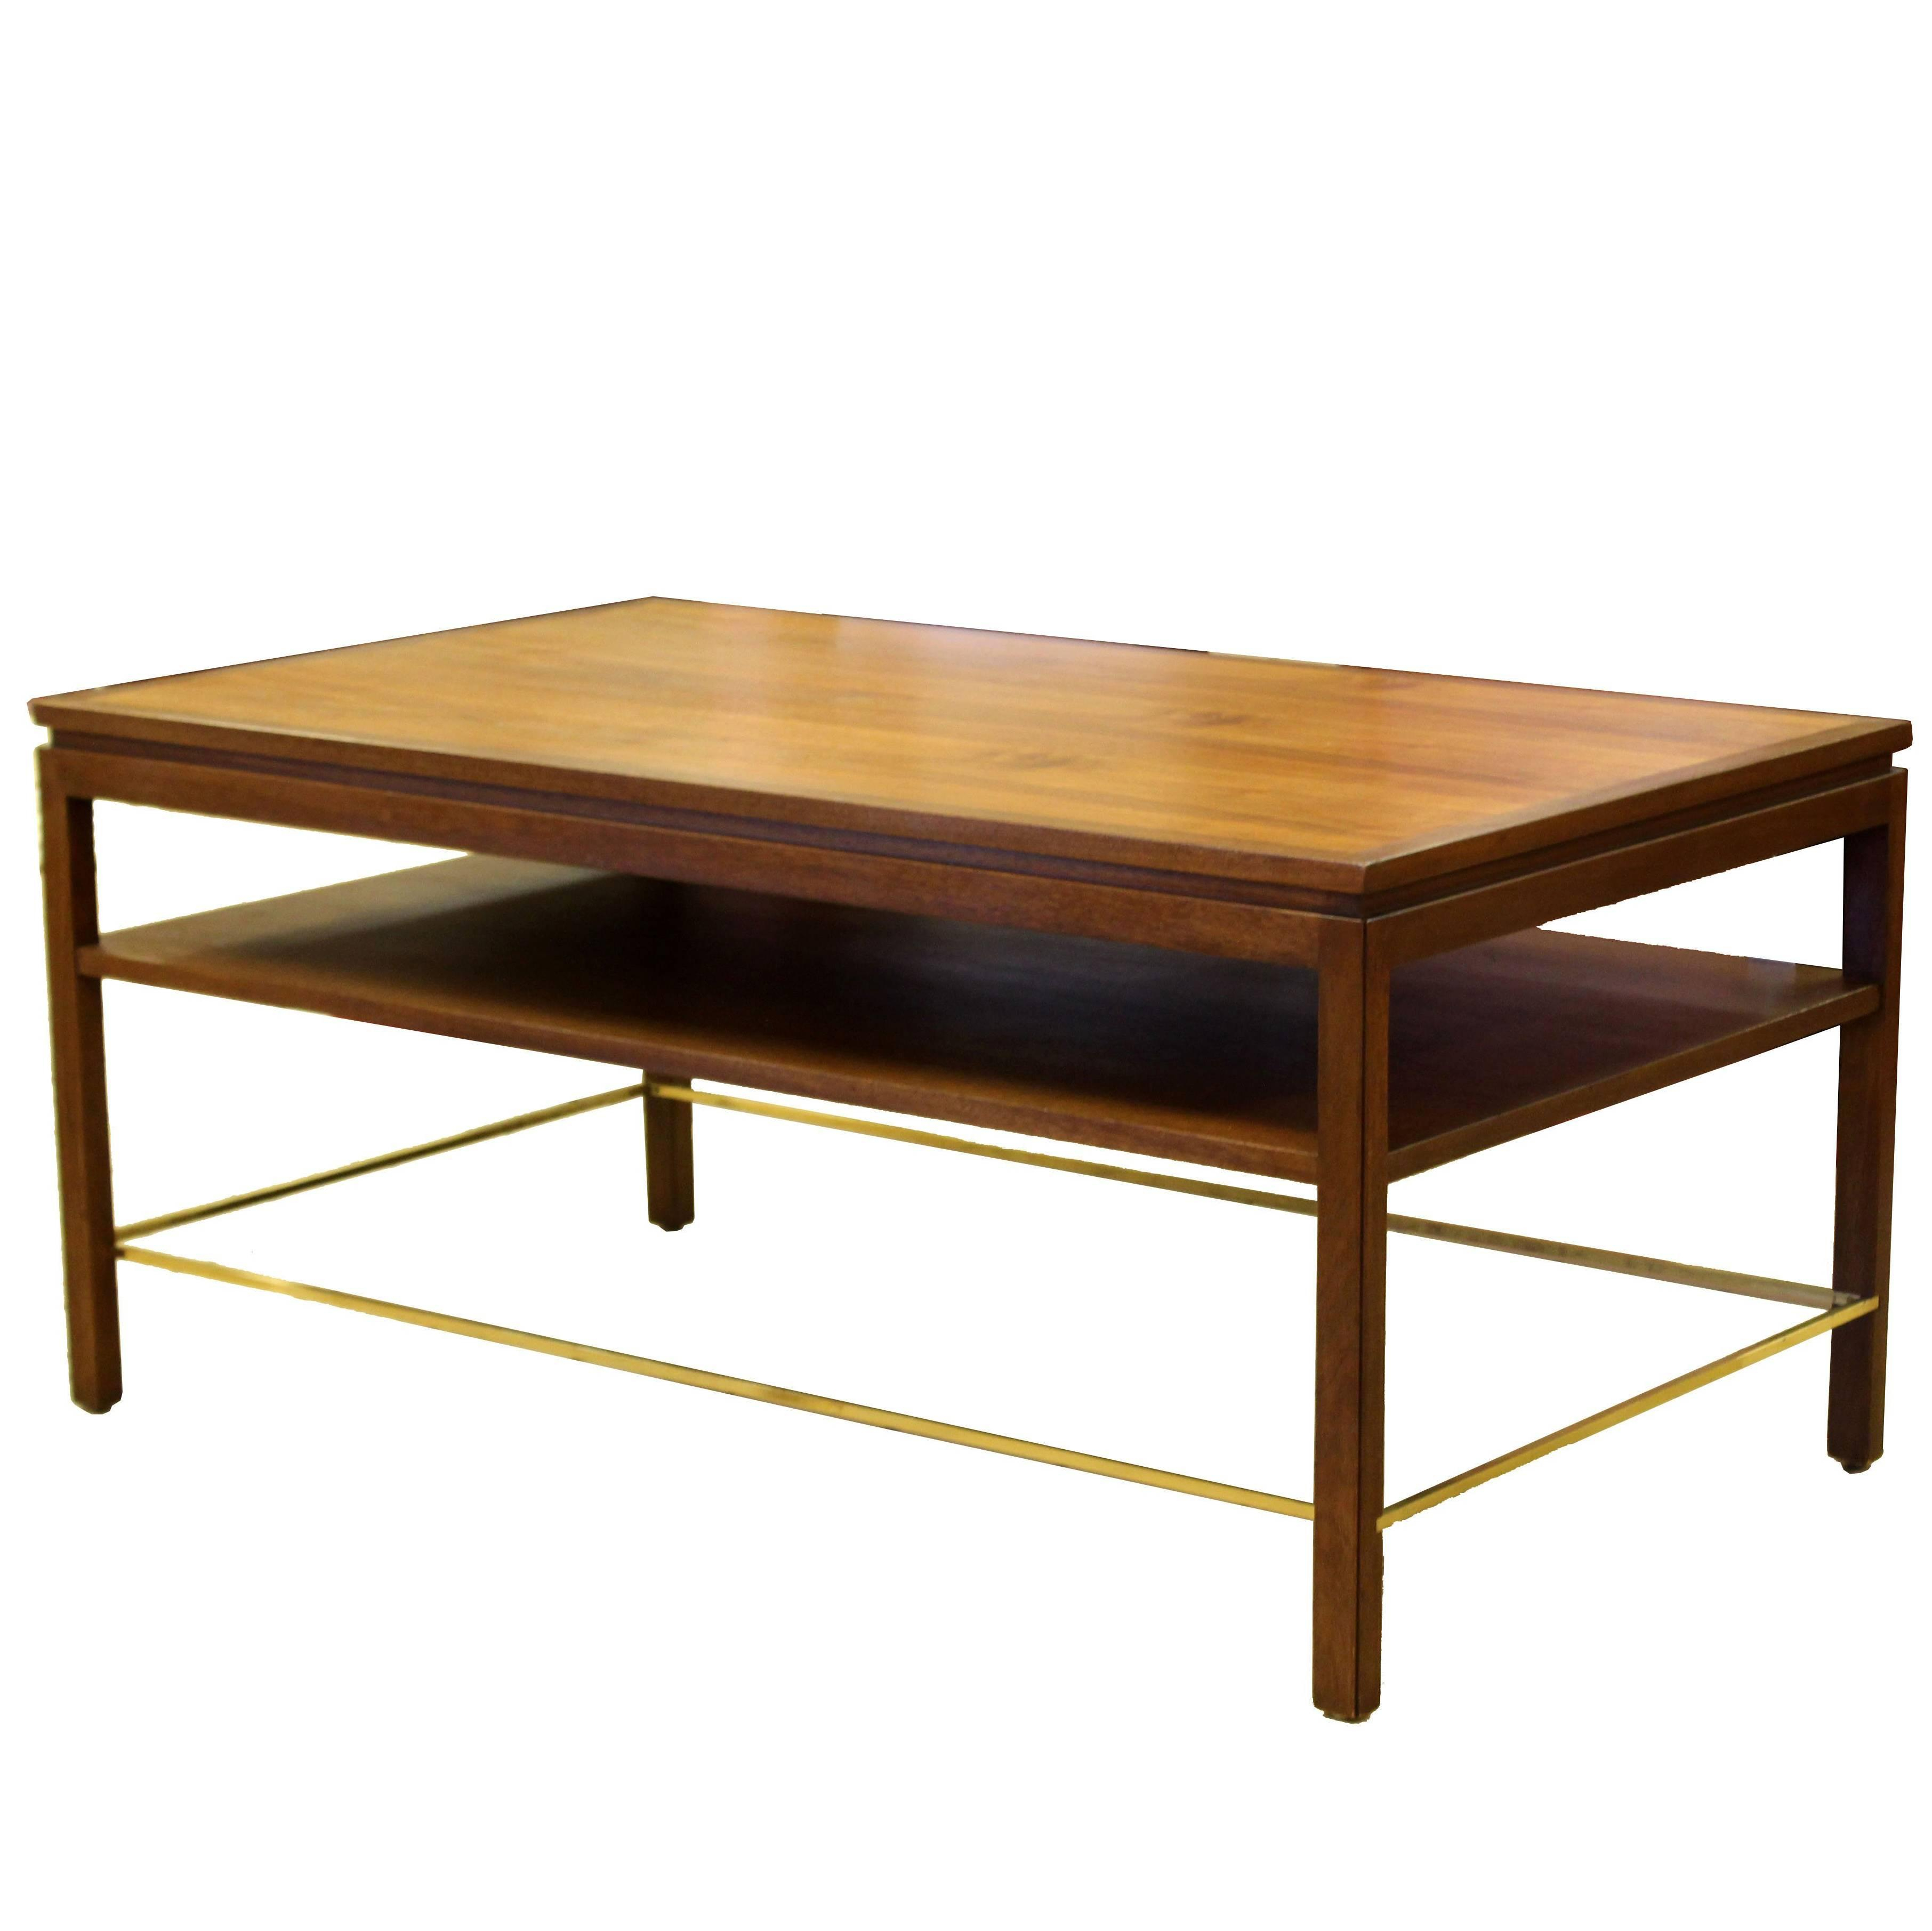 Dunbar Furniture Console Tables - 26 For Sale At 1Stdibs intended for Oak & Brass Stacking Media Console Tables (Image 6 of 30)